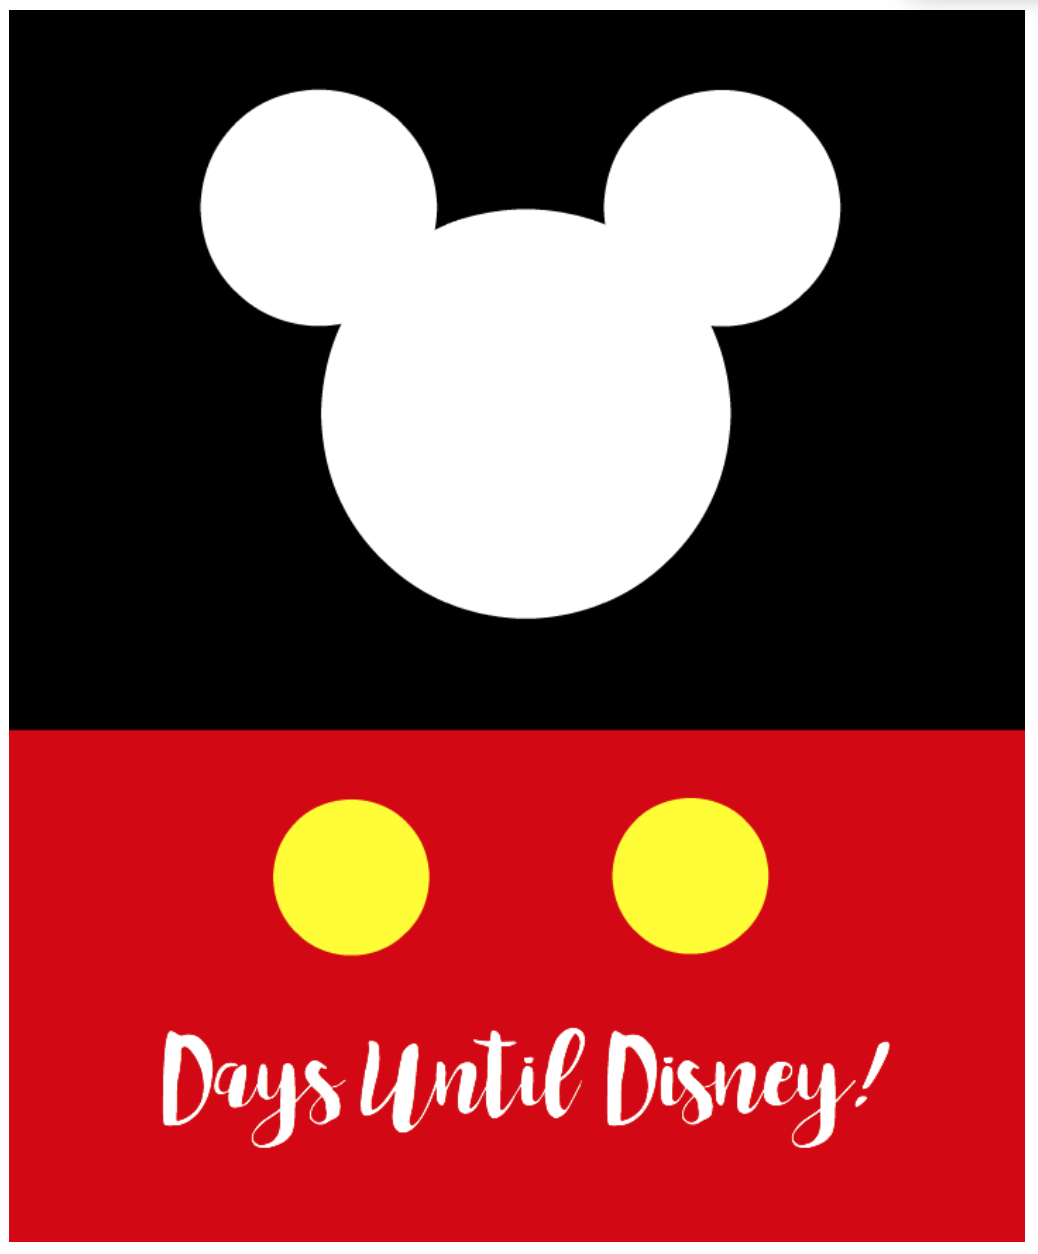 Headed to Disney? Print this Day Until Disney Printable for an easy-to-see erasable countdown for your children.